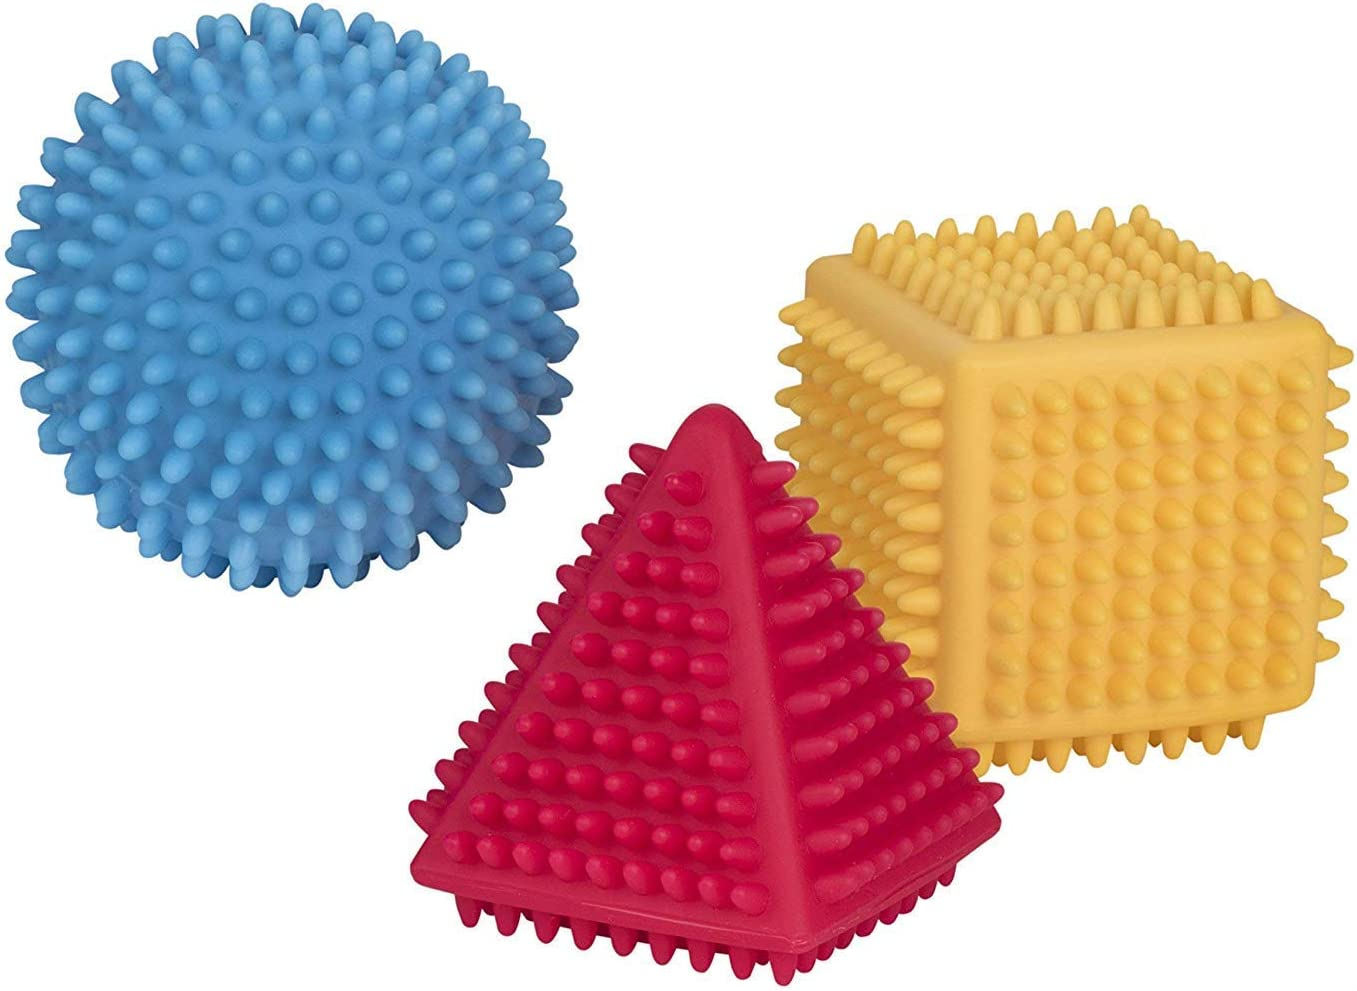 Playkidz Max 64% OFF Super Durable 3 Pack Soft Sens Chunky Relief and Stress 55% OFF